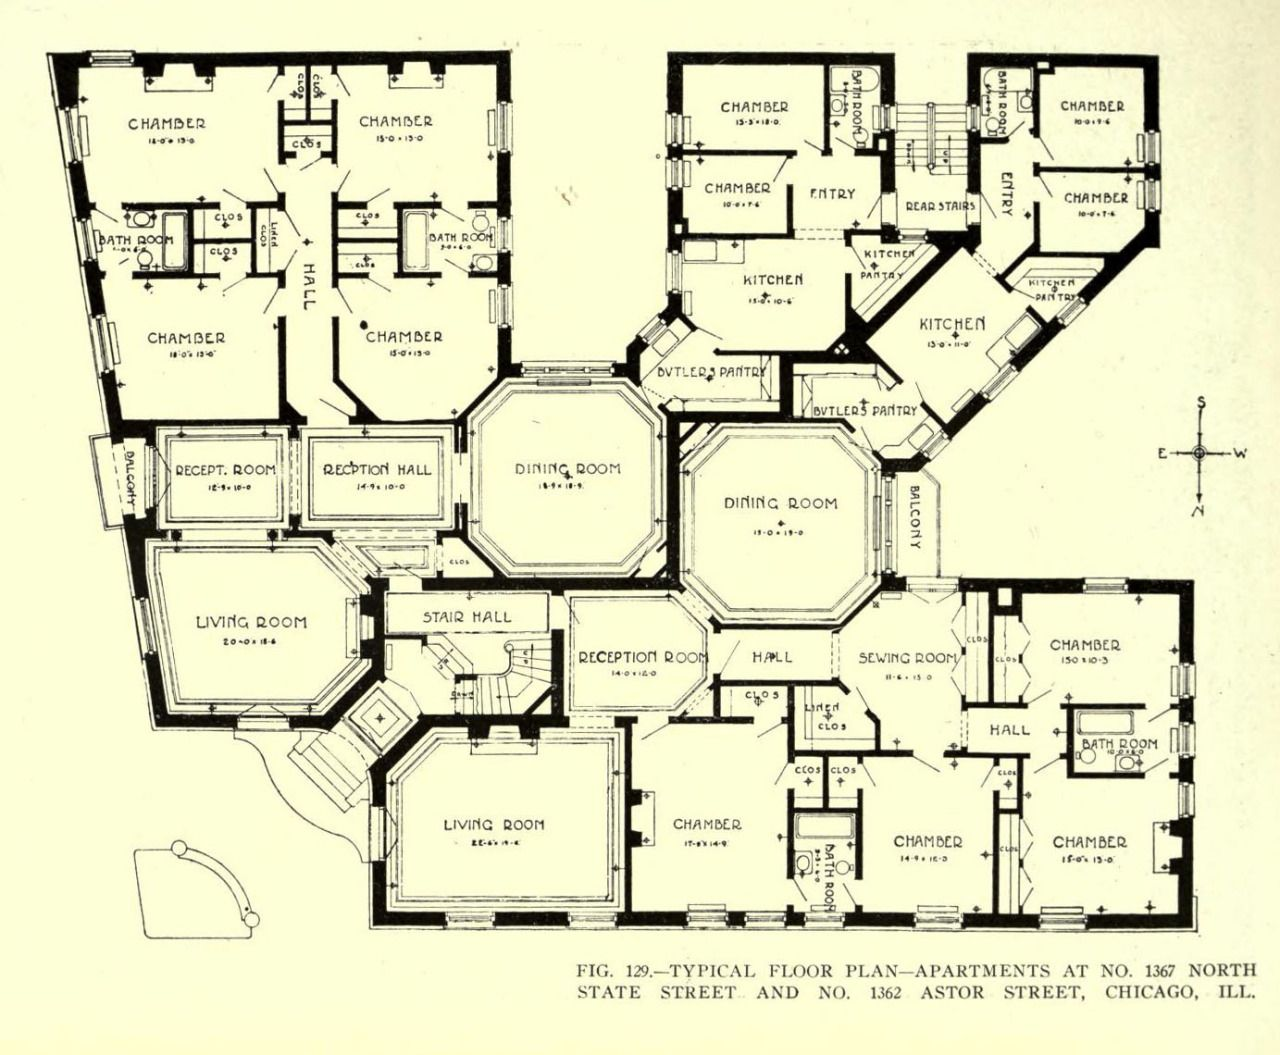 Floor plan for an apartment building, CHicago | Floor Plans ...